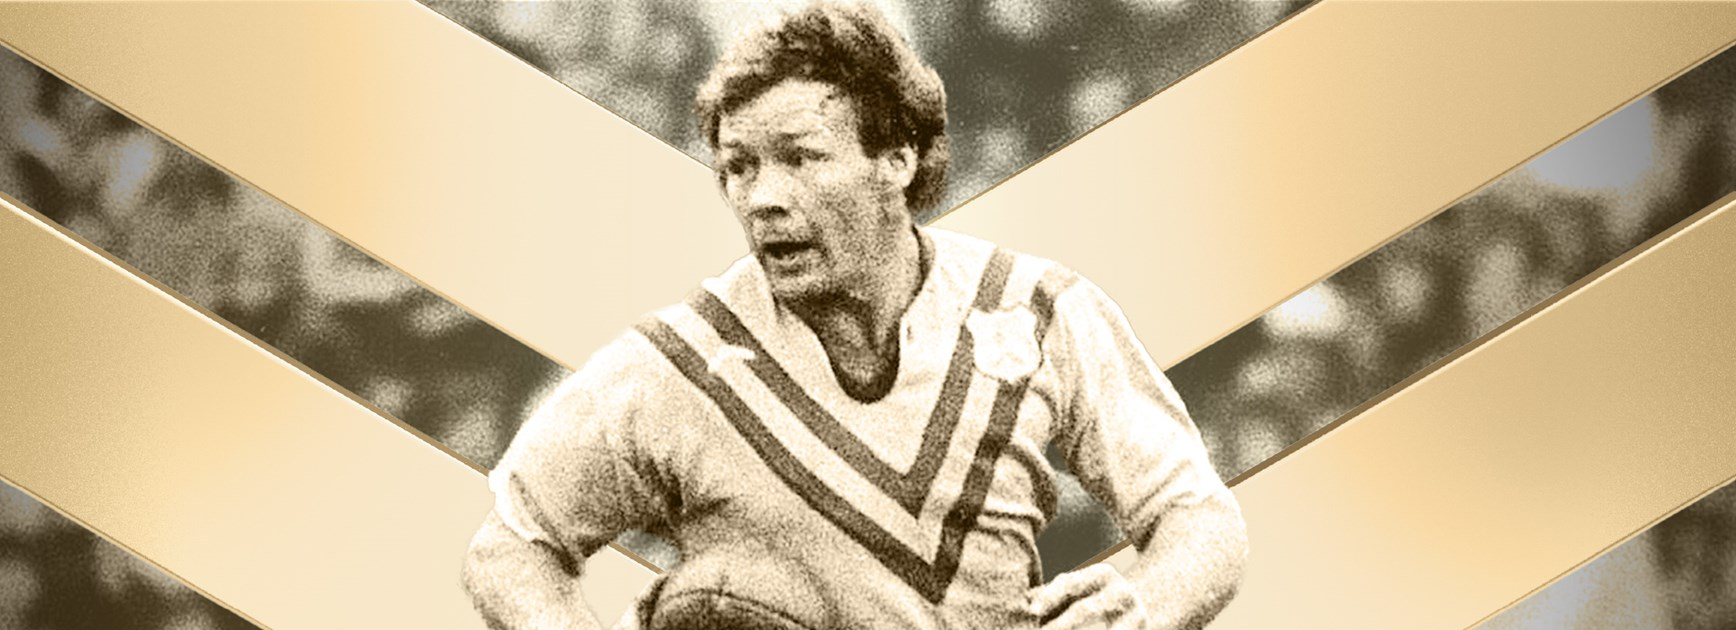 Bob Fulton: the complete footballer who became a most deserving Immortal